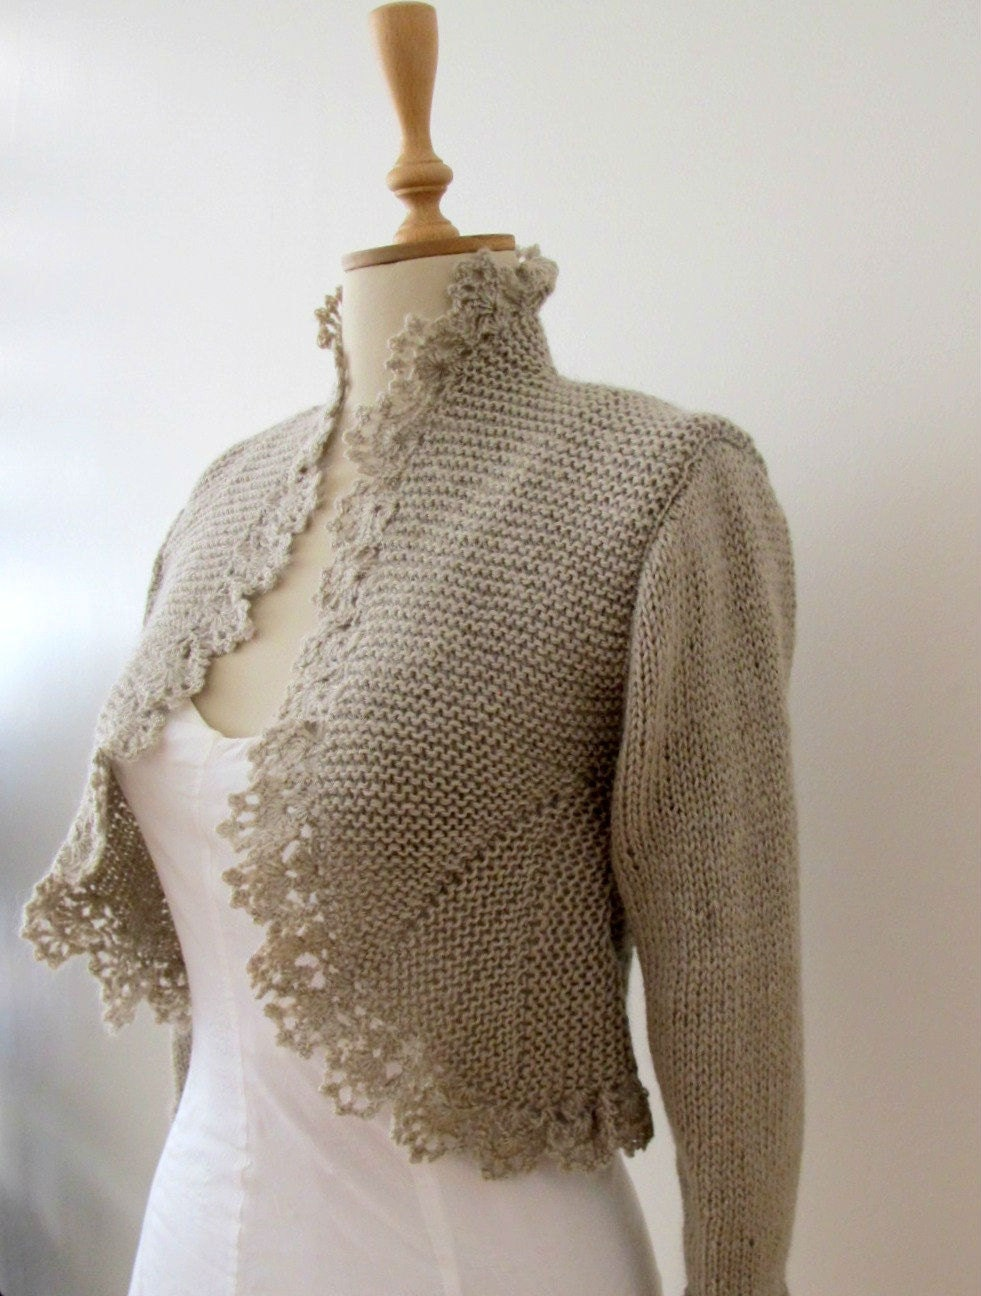 CROCHETBUTTERFLY: Hand Knitted Sweater Knitting Cardigan Crochet ...